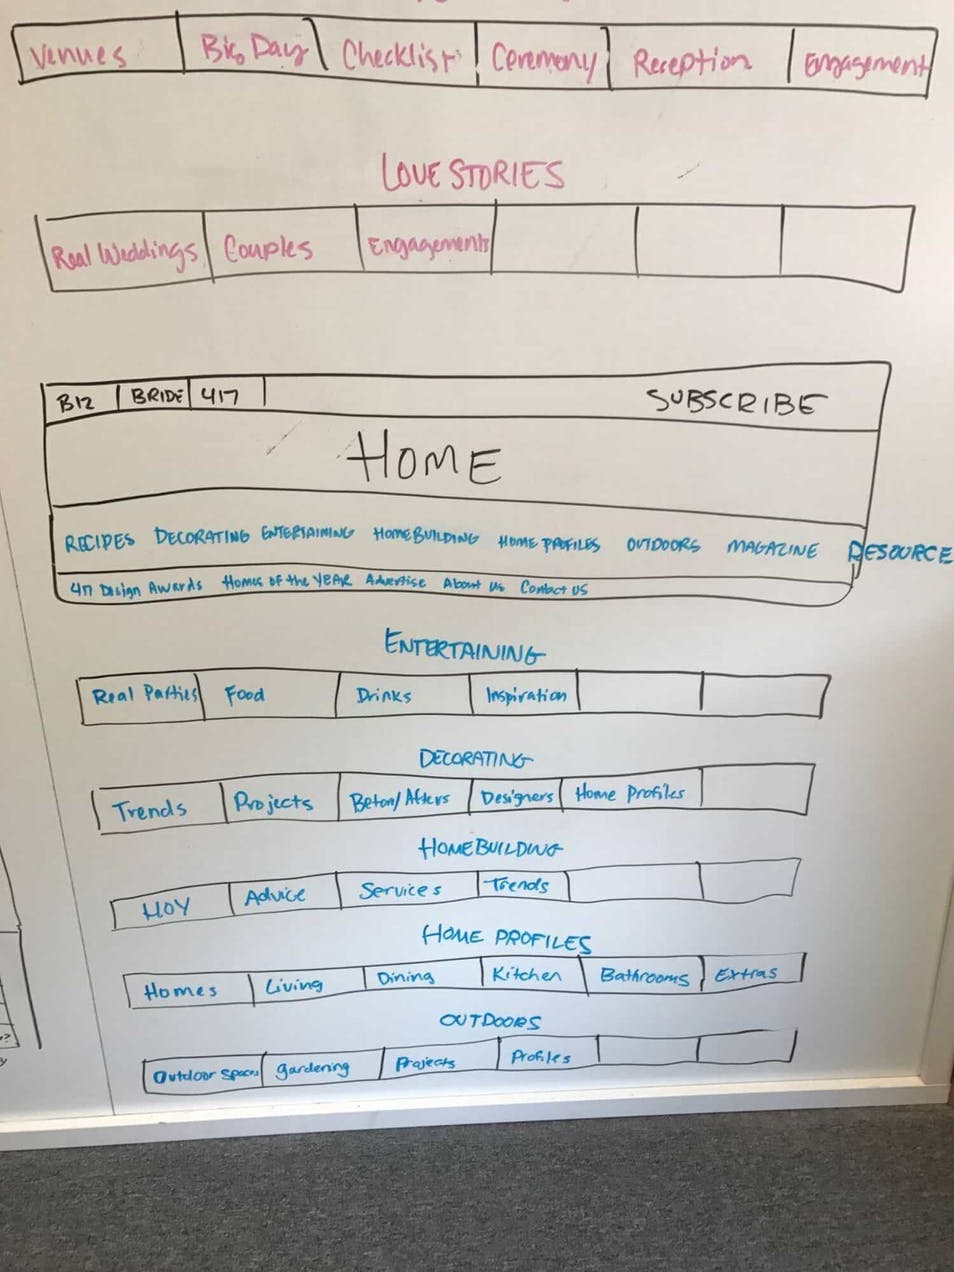 A picture of hand-drawn wireframes